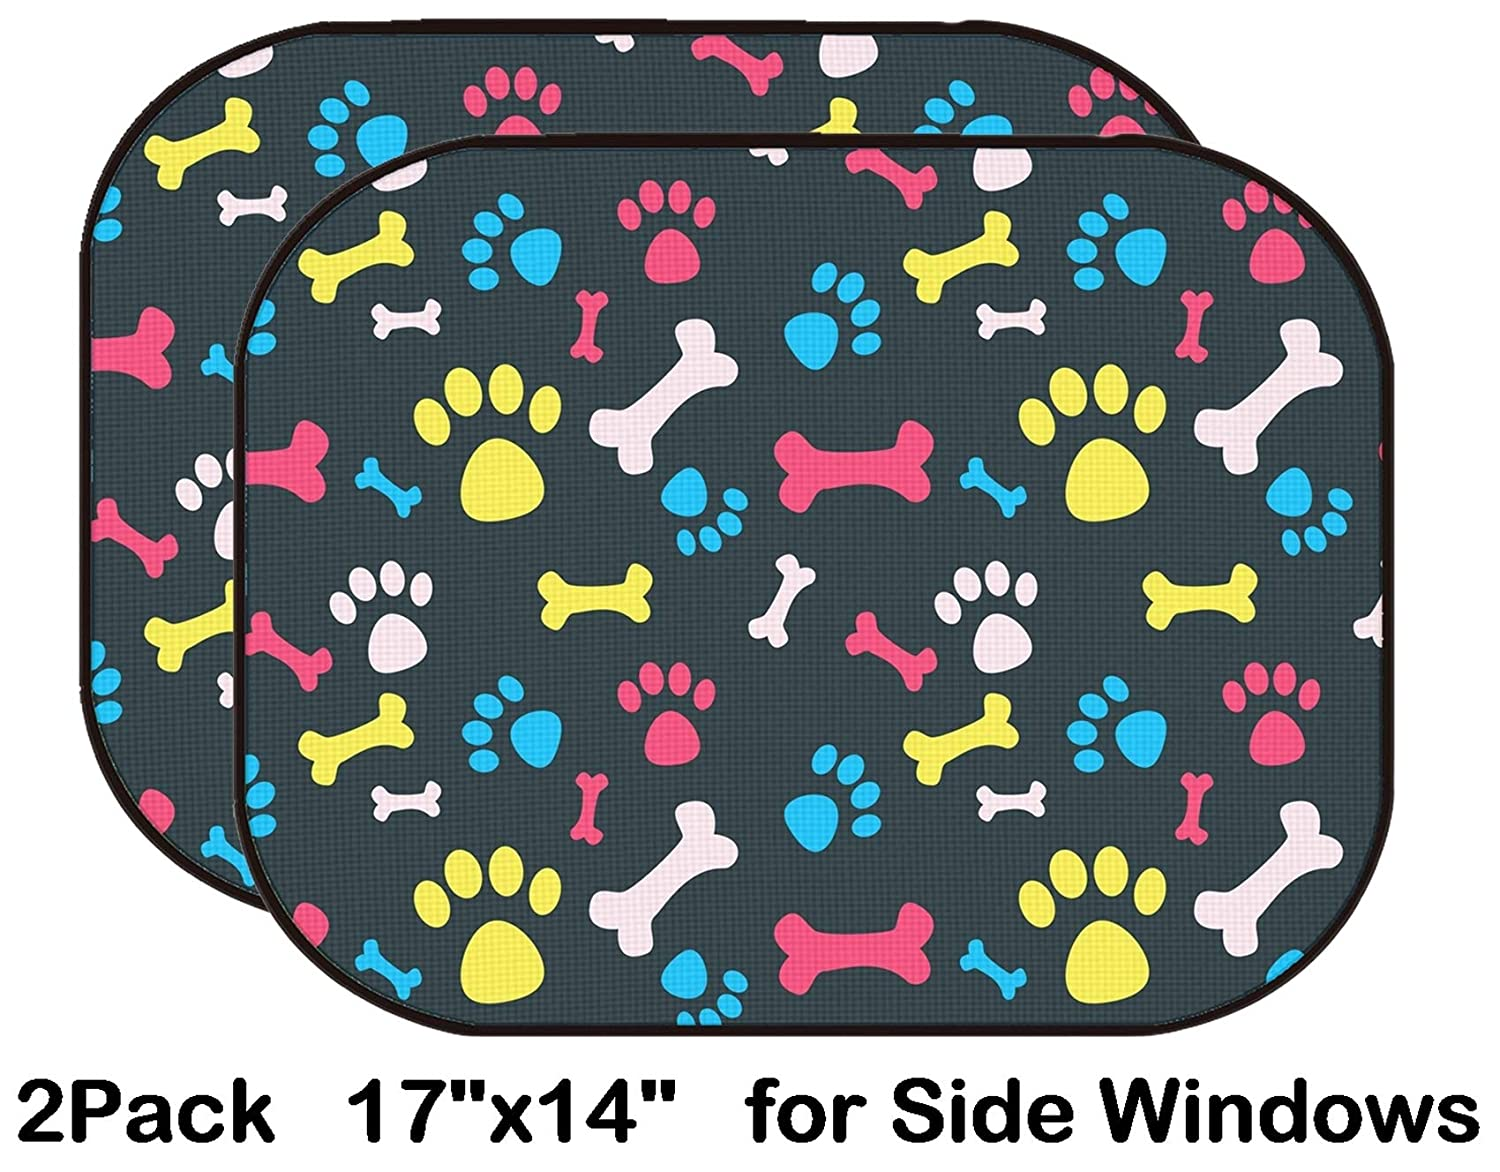 Liili Car Sun Shade for Side Rear Window Blocks UV Ray Sunlight Heat - Protect Baby and Pet - 2 Pack Image ID: 23228949 Cool pet Background with Dog paw Prints and Bones Vector seamle Liili Products